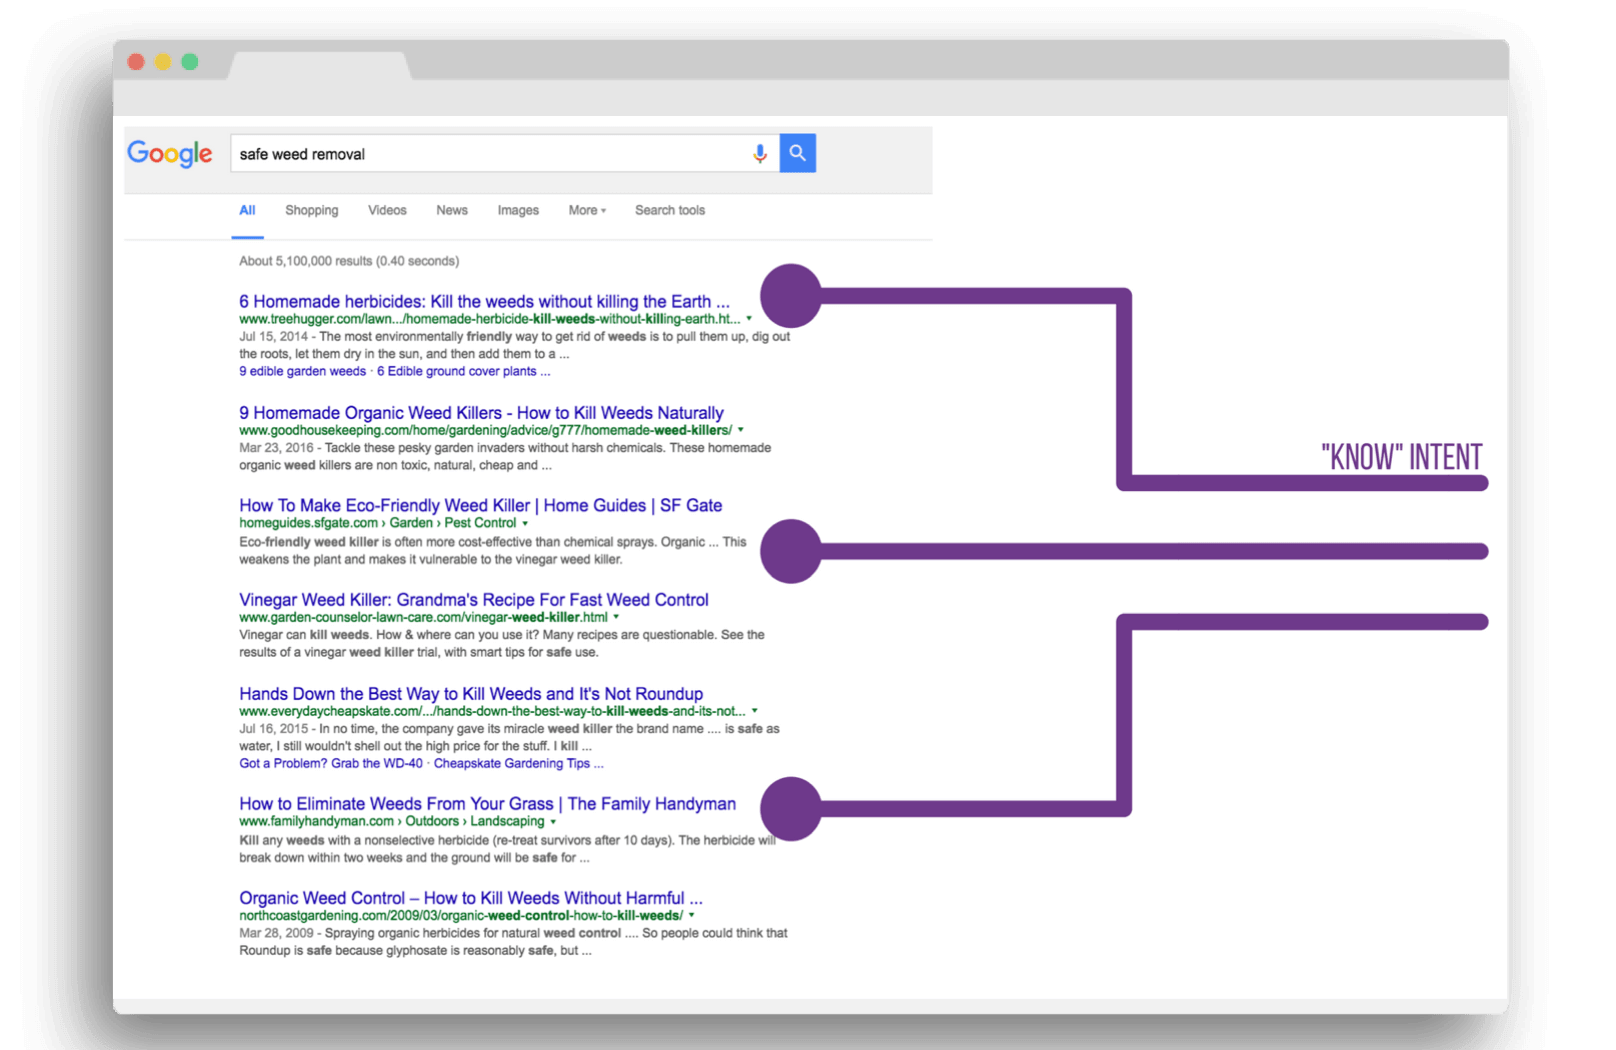 """SERP results for """"safe weed removal."""""""